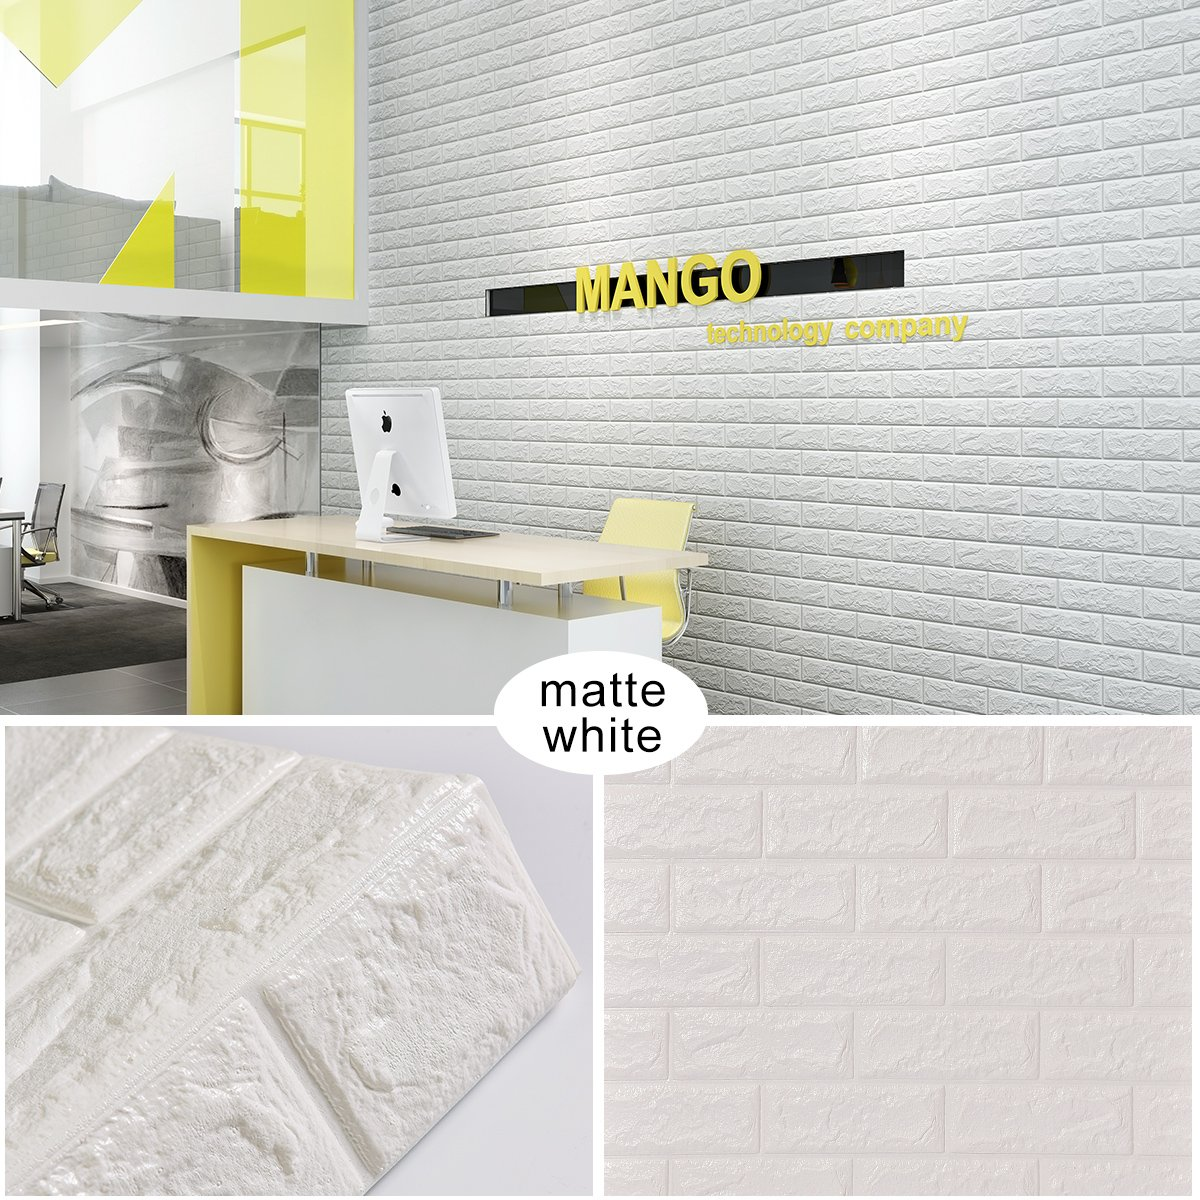 Goetland 5.9 Sq Ft 3D Brick Wall Panels Stickers PE Foam Self Adhesive Wallpaper Removable Wall Decoration, Pack of 10, White